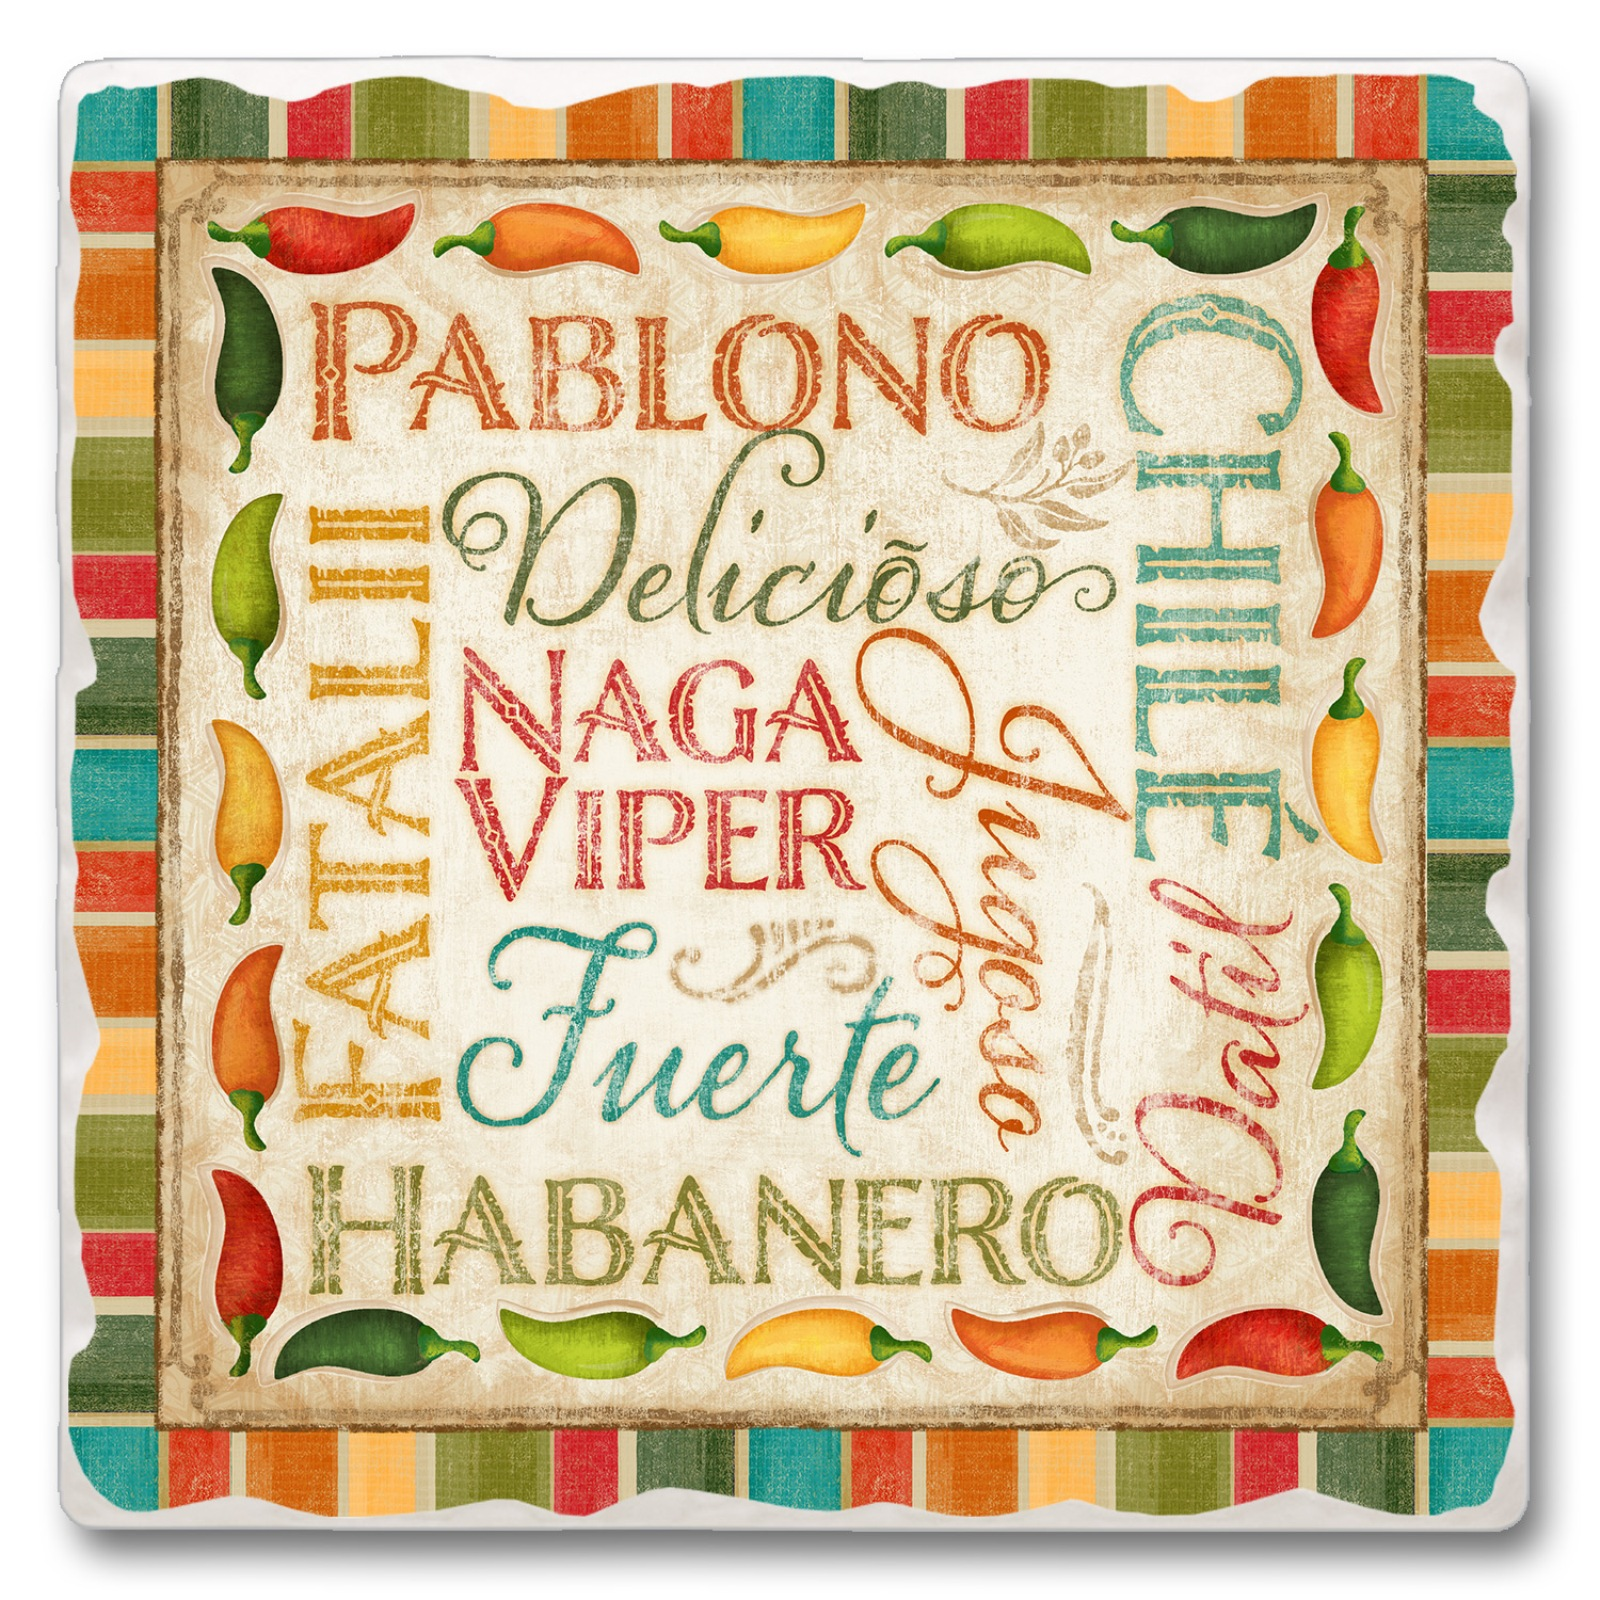 Habanero Chile Pablono Fiesta Peppers Kitchen Dining Room Absorbent Stone Trivet